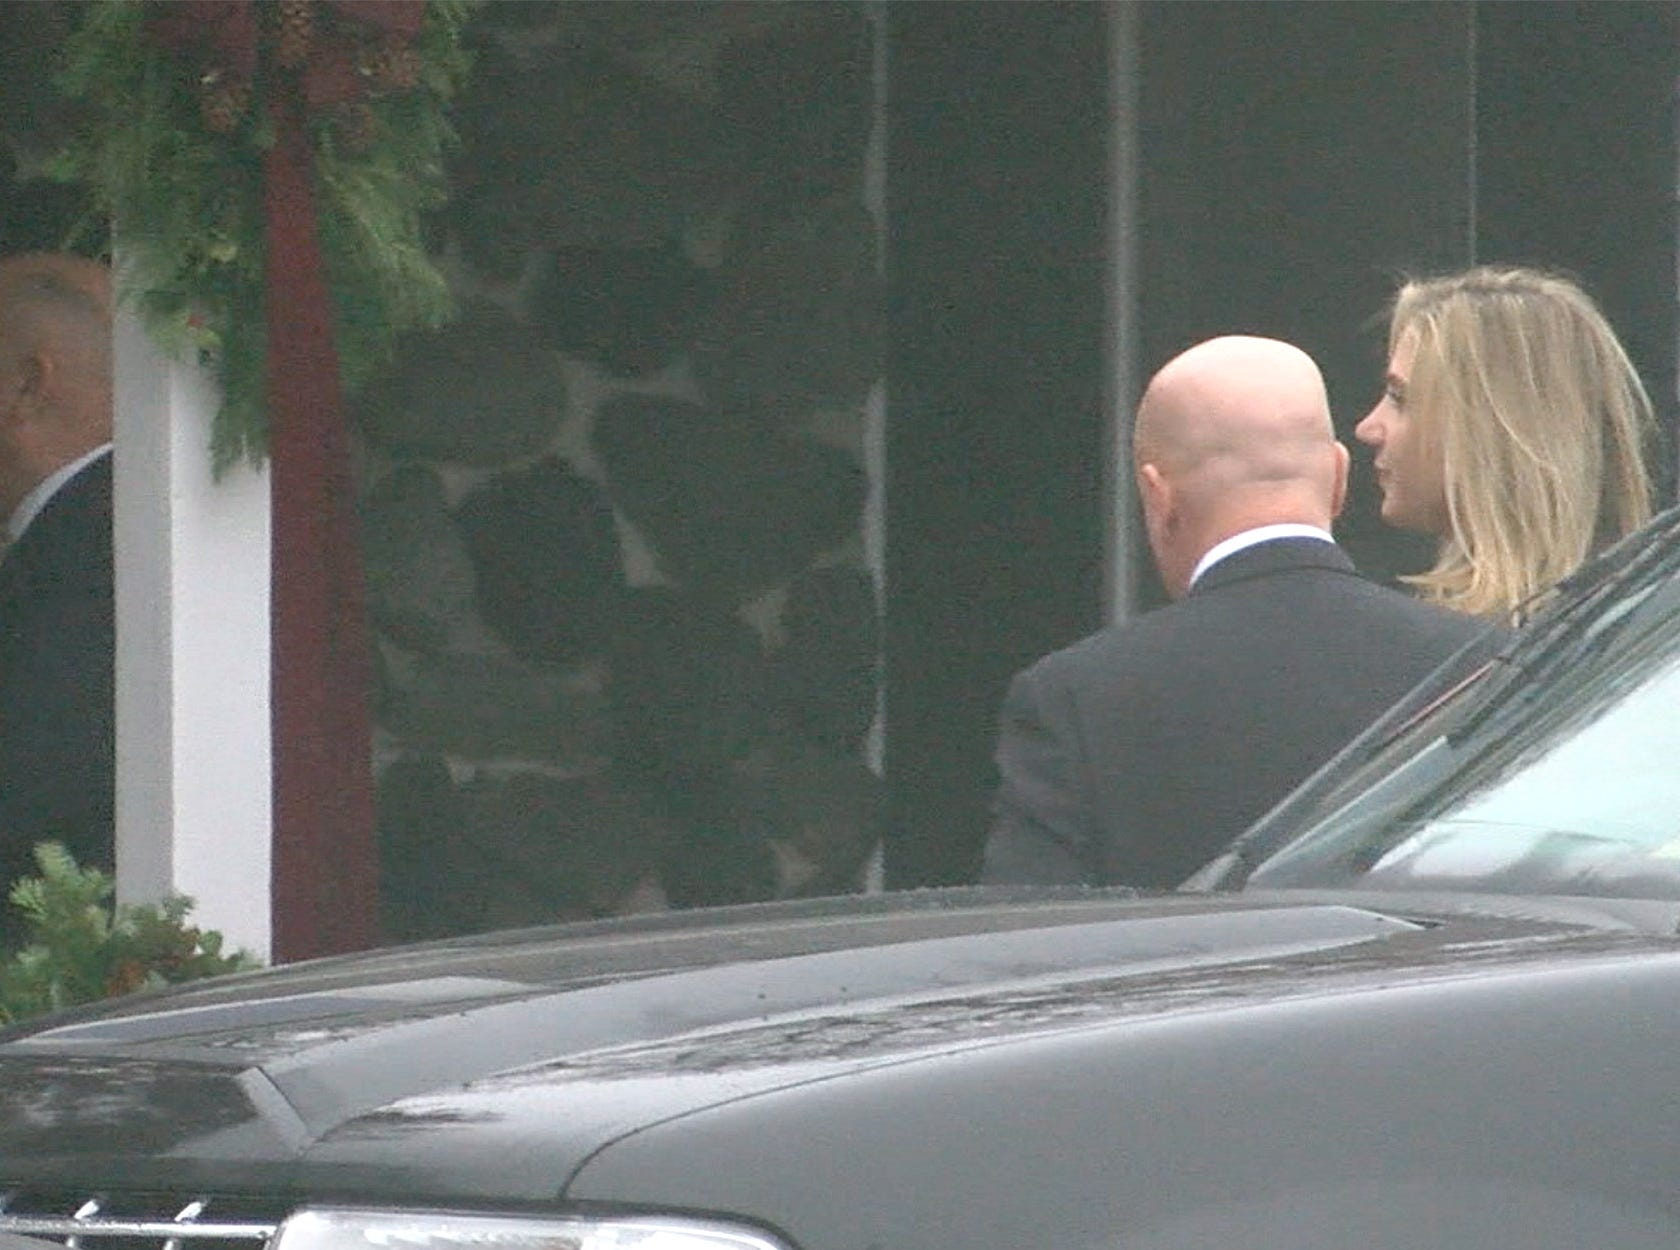 Family members arrive at the Holmdel Funeral Home where the viewing and funeral was being held for the four members of the Caneiro family who were killed in an arson fire at their Colts Neck home.  Paul Caneiro has been charged in their deaths.